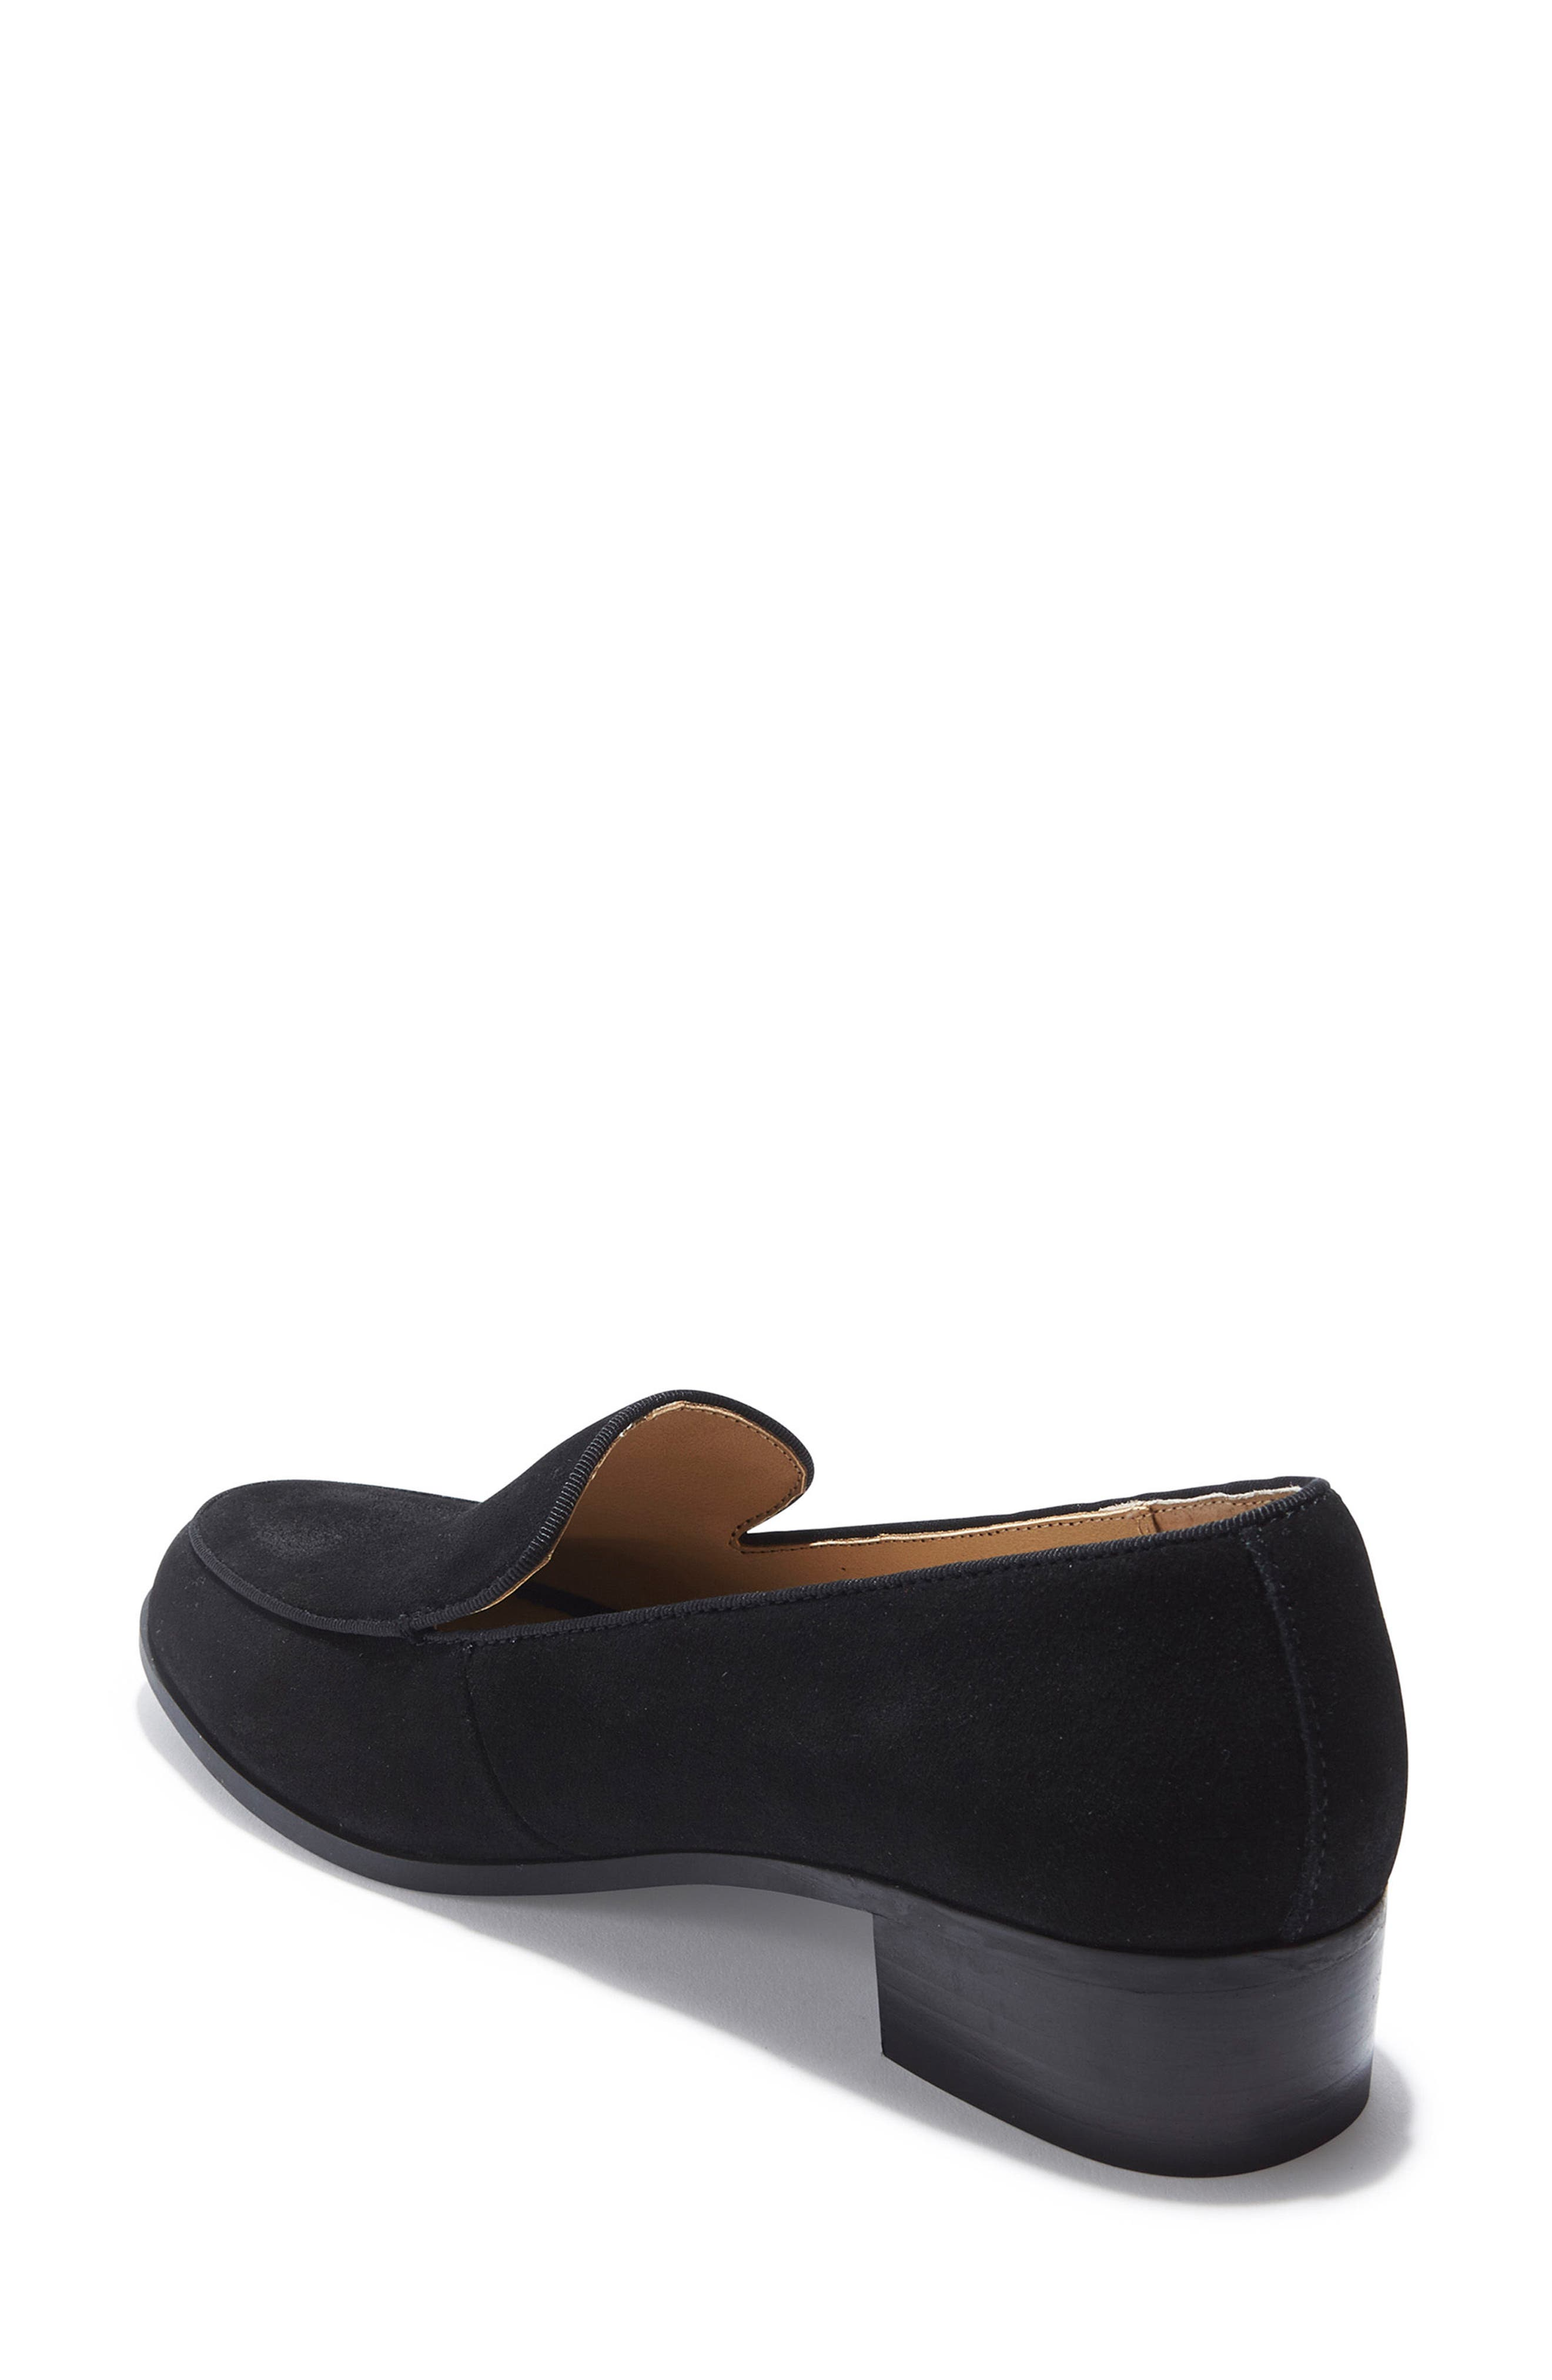 Jazzy Loafer,                             Alternate thumbnail 2, color,                             Black Suede